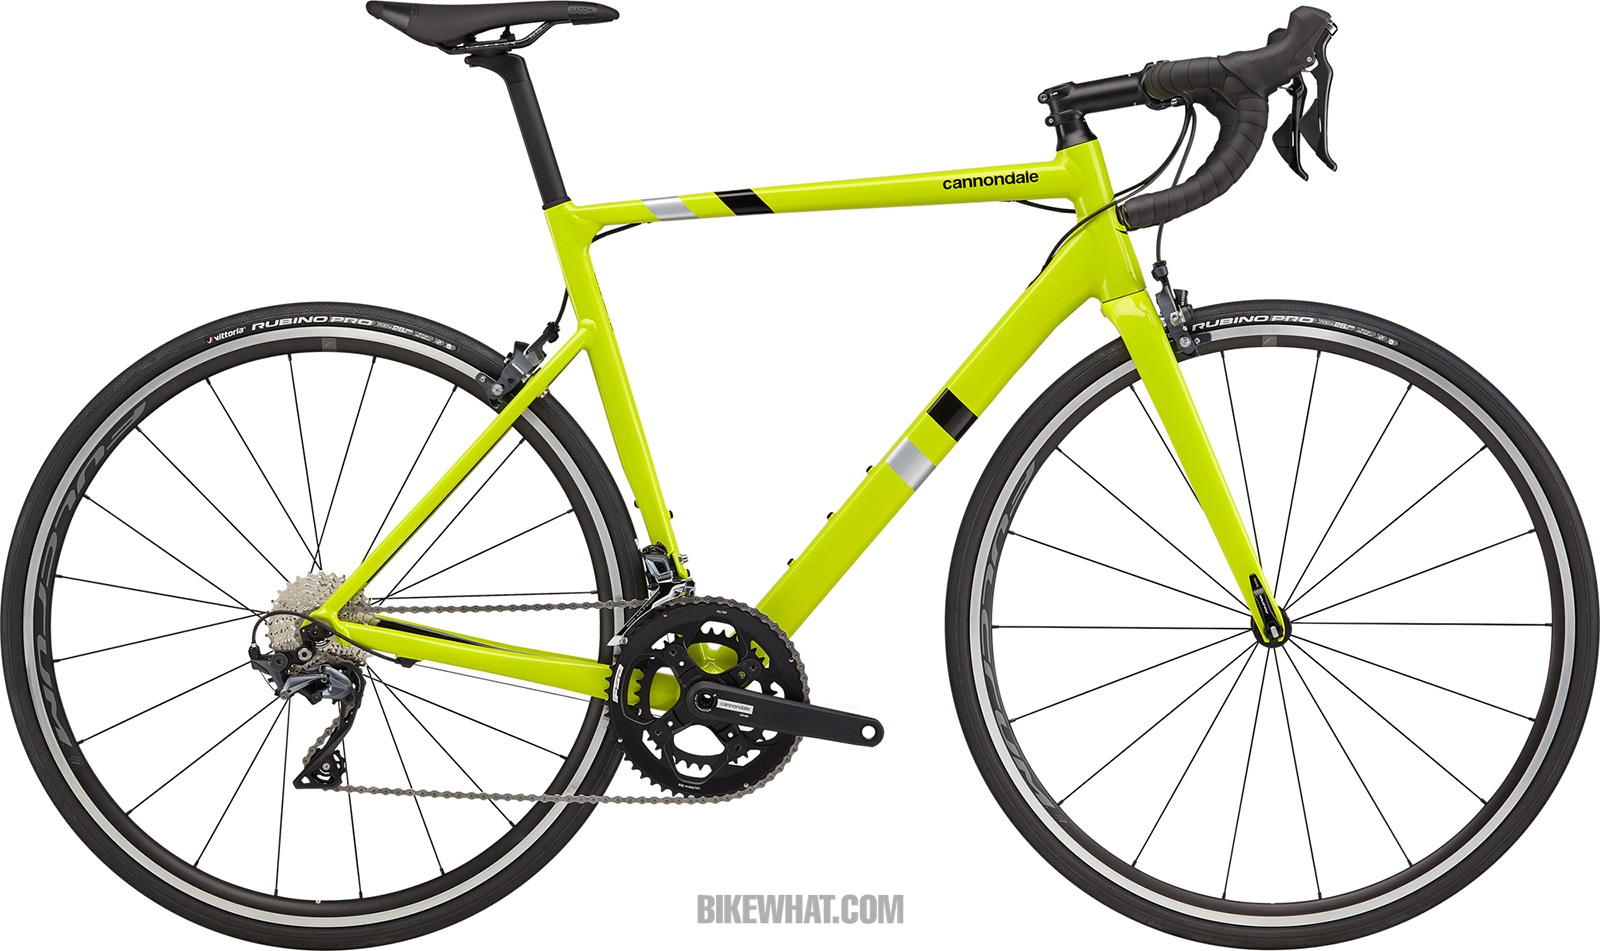 Gear_Cannondale_CAAD13_Ult.jpg